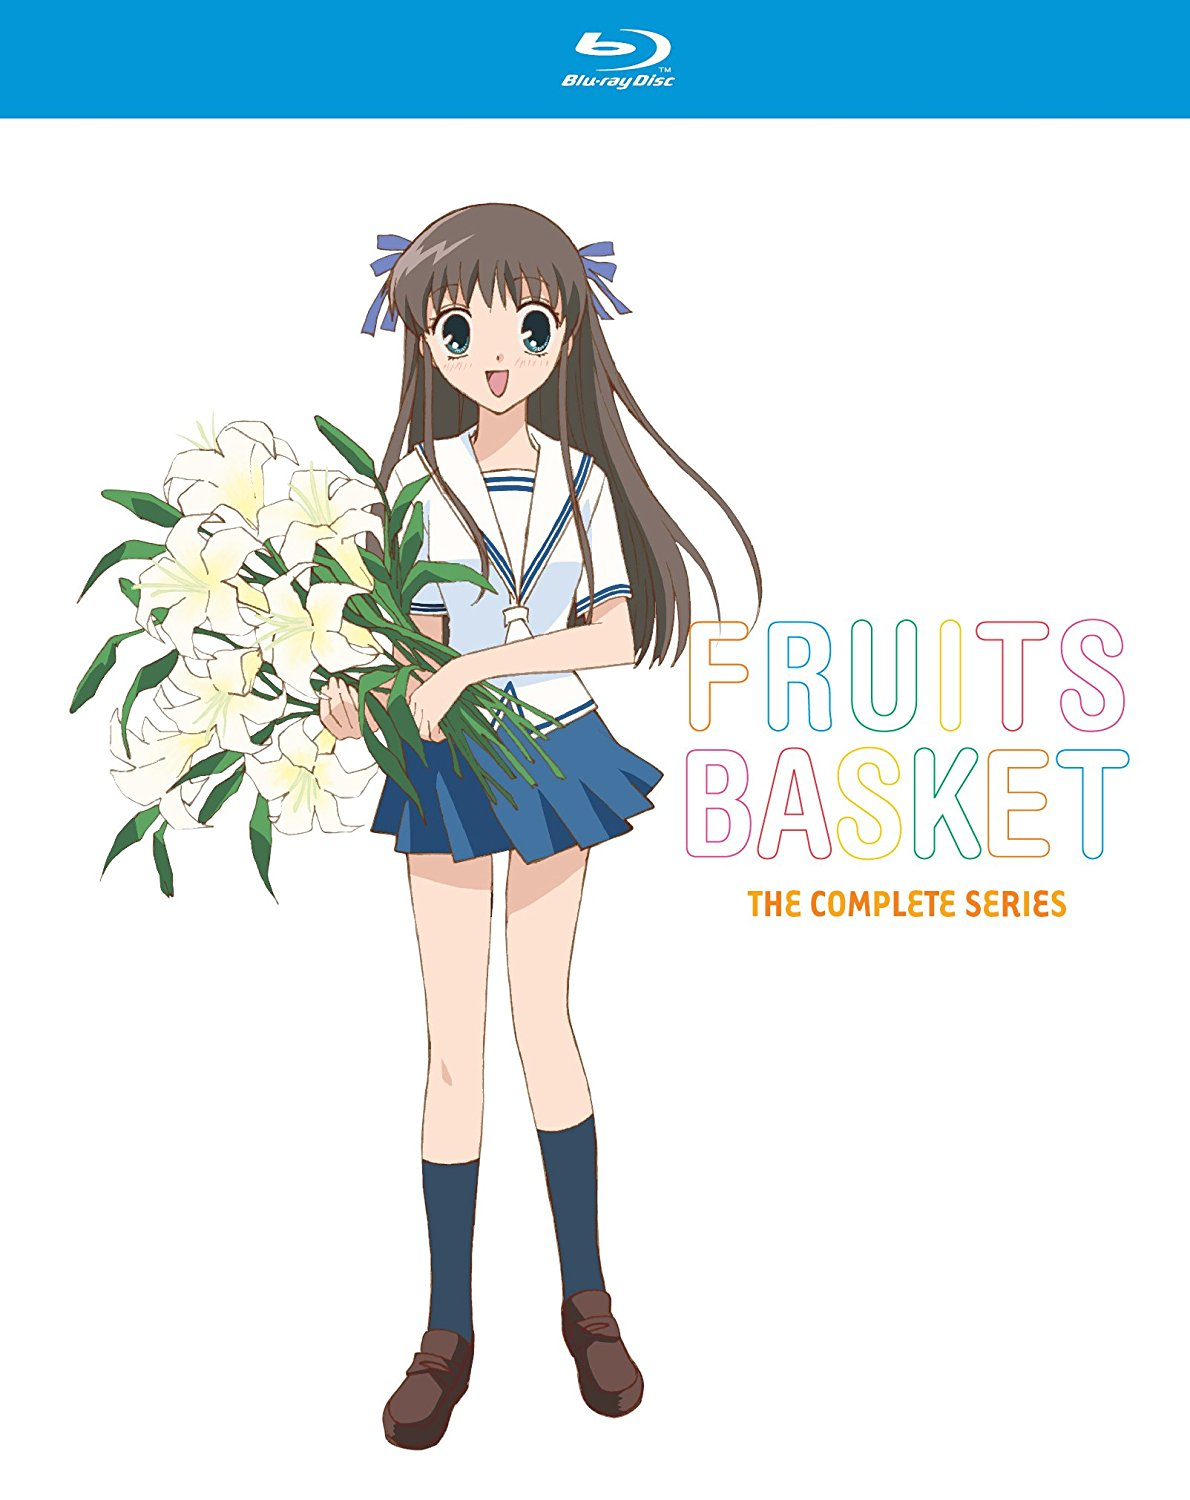 Fruits Basket Is A 2001 Shojo Anime Series It Produced By Studio Deen And Licensed Funimation Currently Available On DVD Blu Ray